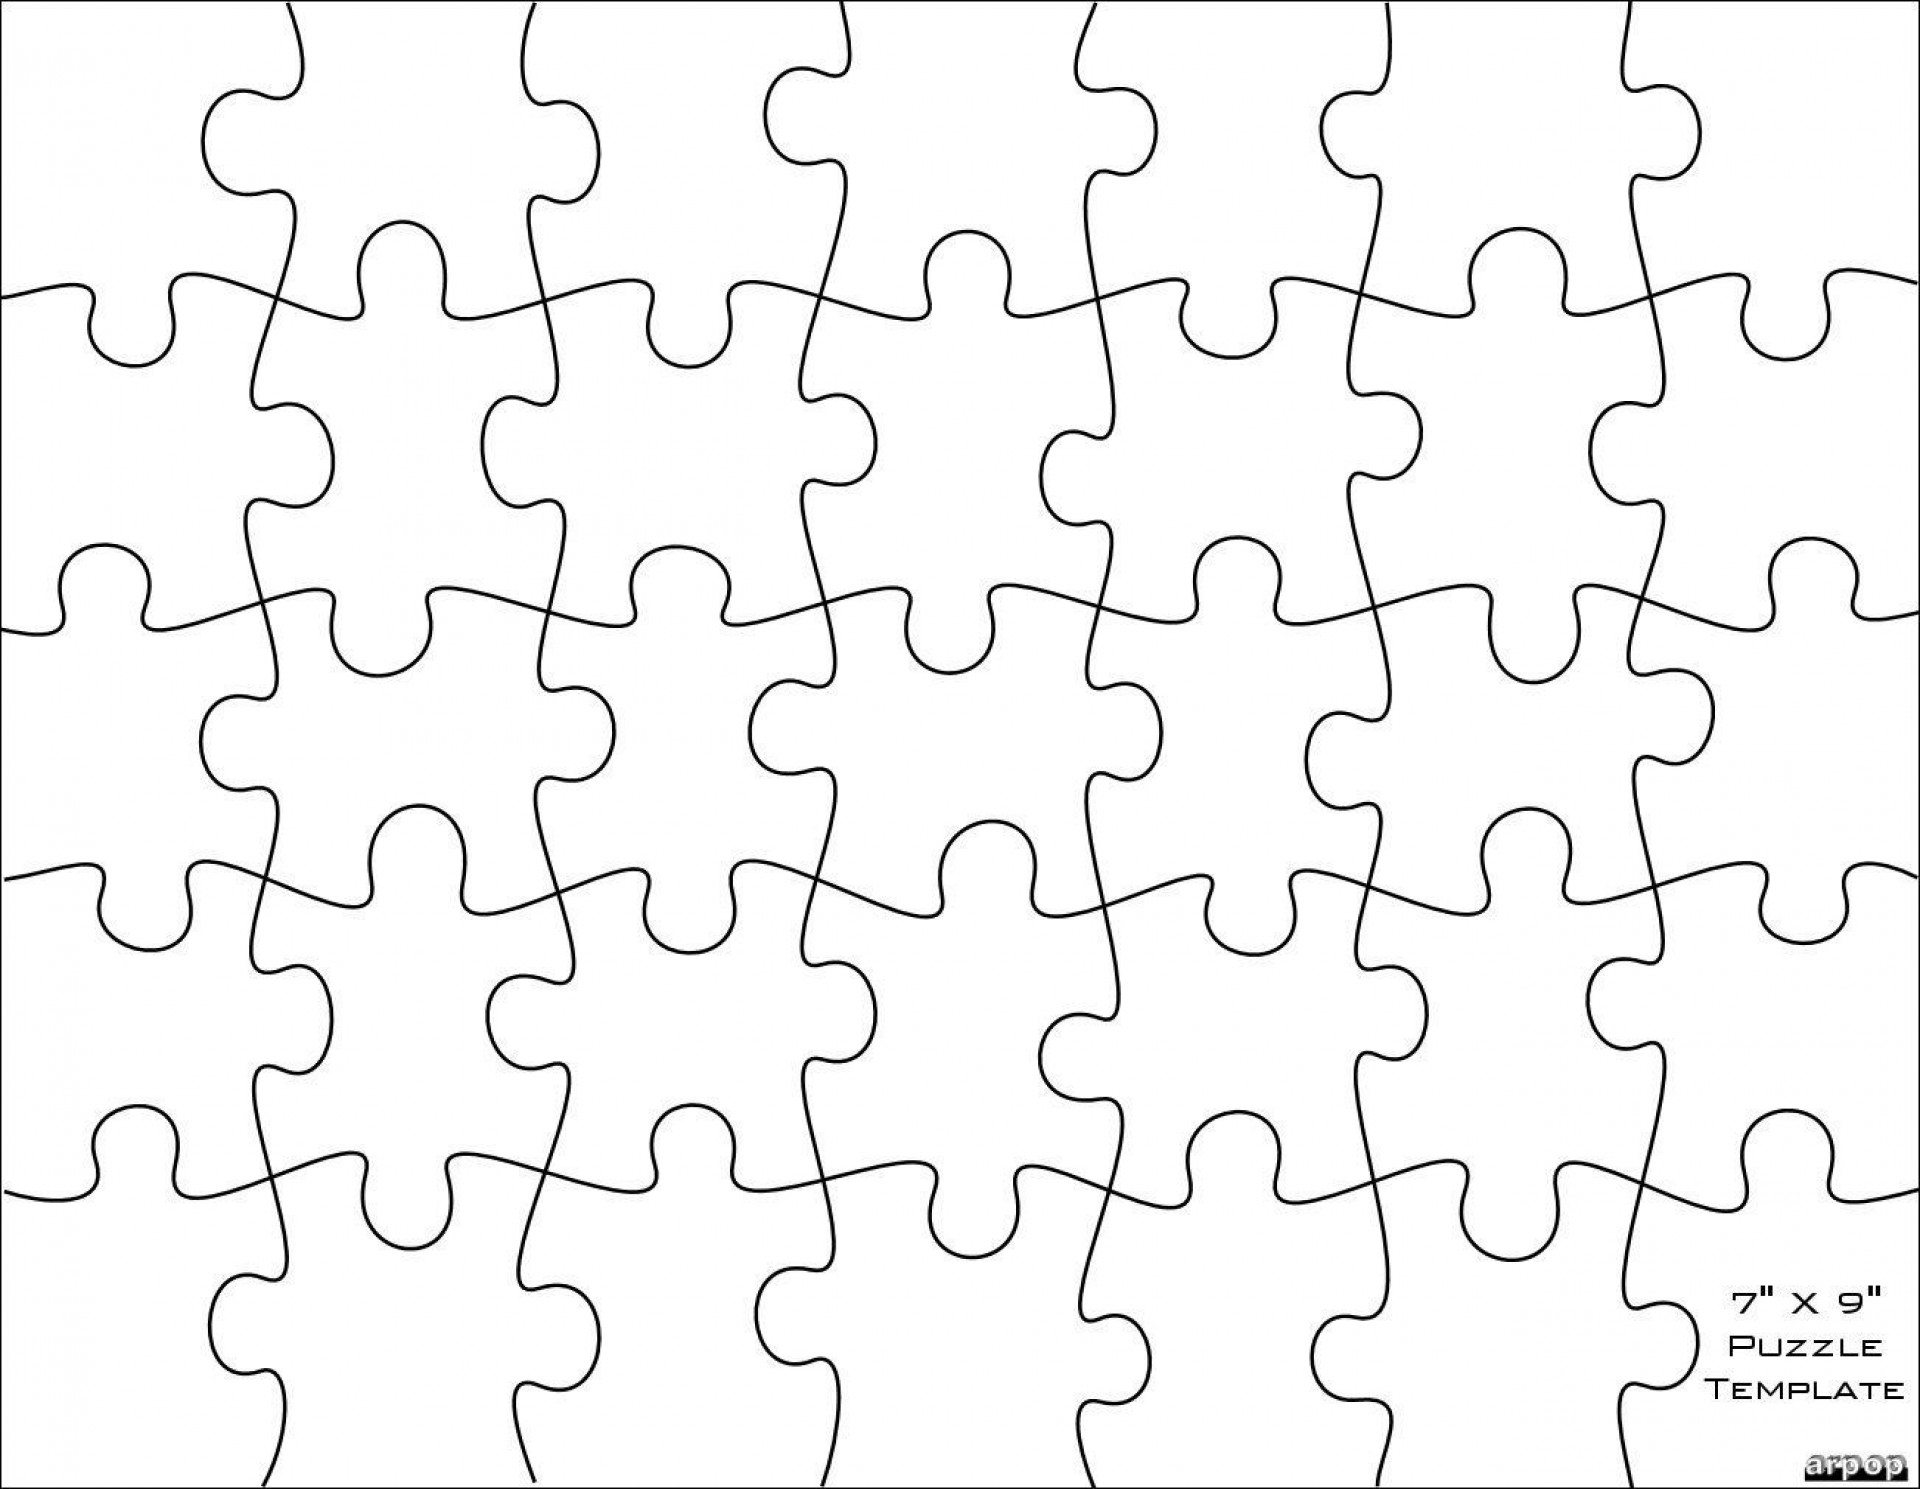 001 Imposing Jig Saw Puzzle Template High Definition  Printable Blank Jigsaw Vector Free Png1920